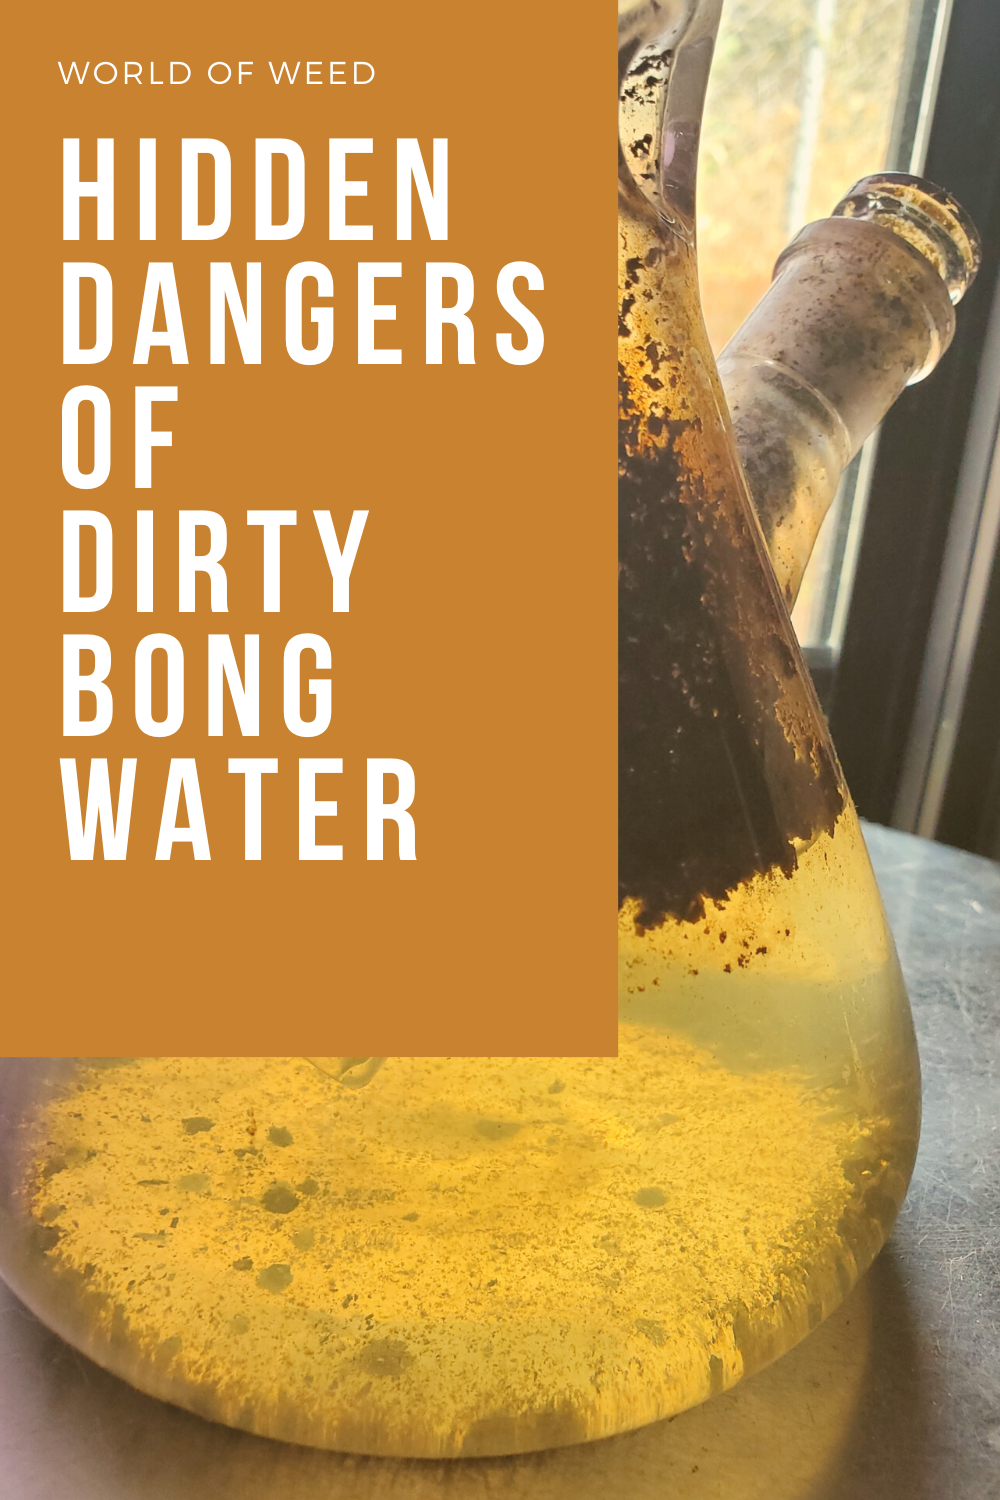 The Hidden Dangers of Dirty Bong Water